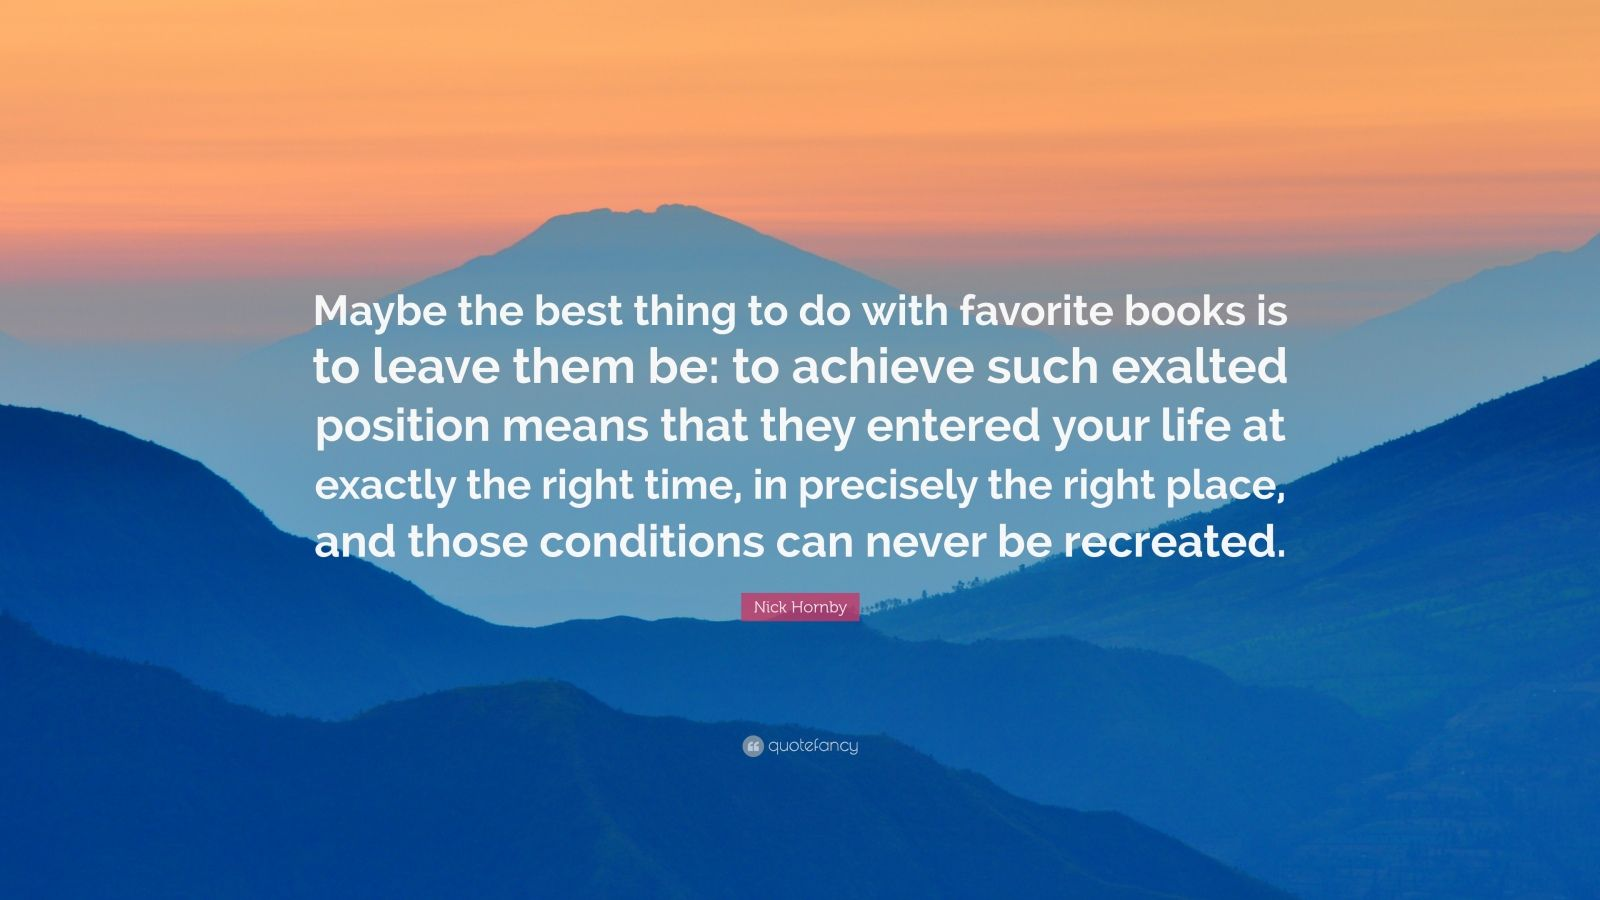 "Nick Hornby Quote: ""Maybe the best thing to do with favorite books is to leave them be: to achieve such exalted position means that they entered your life at exactly the right time, in precisely the right place, and those conditions can never be recreated."""